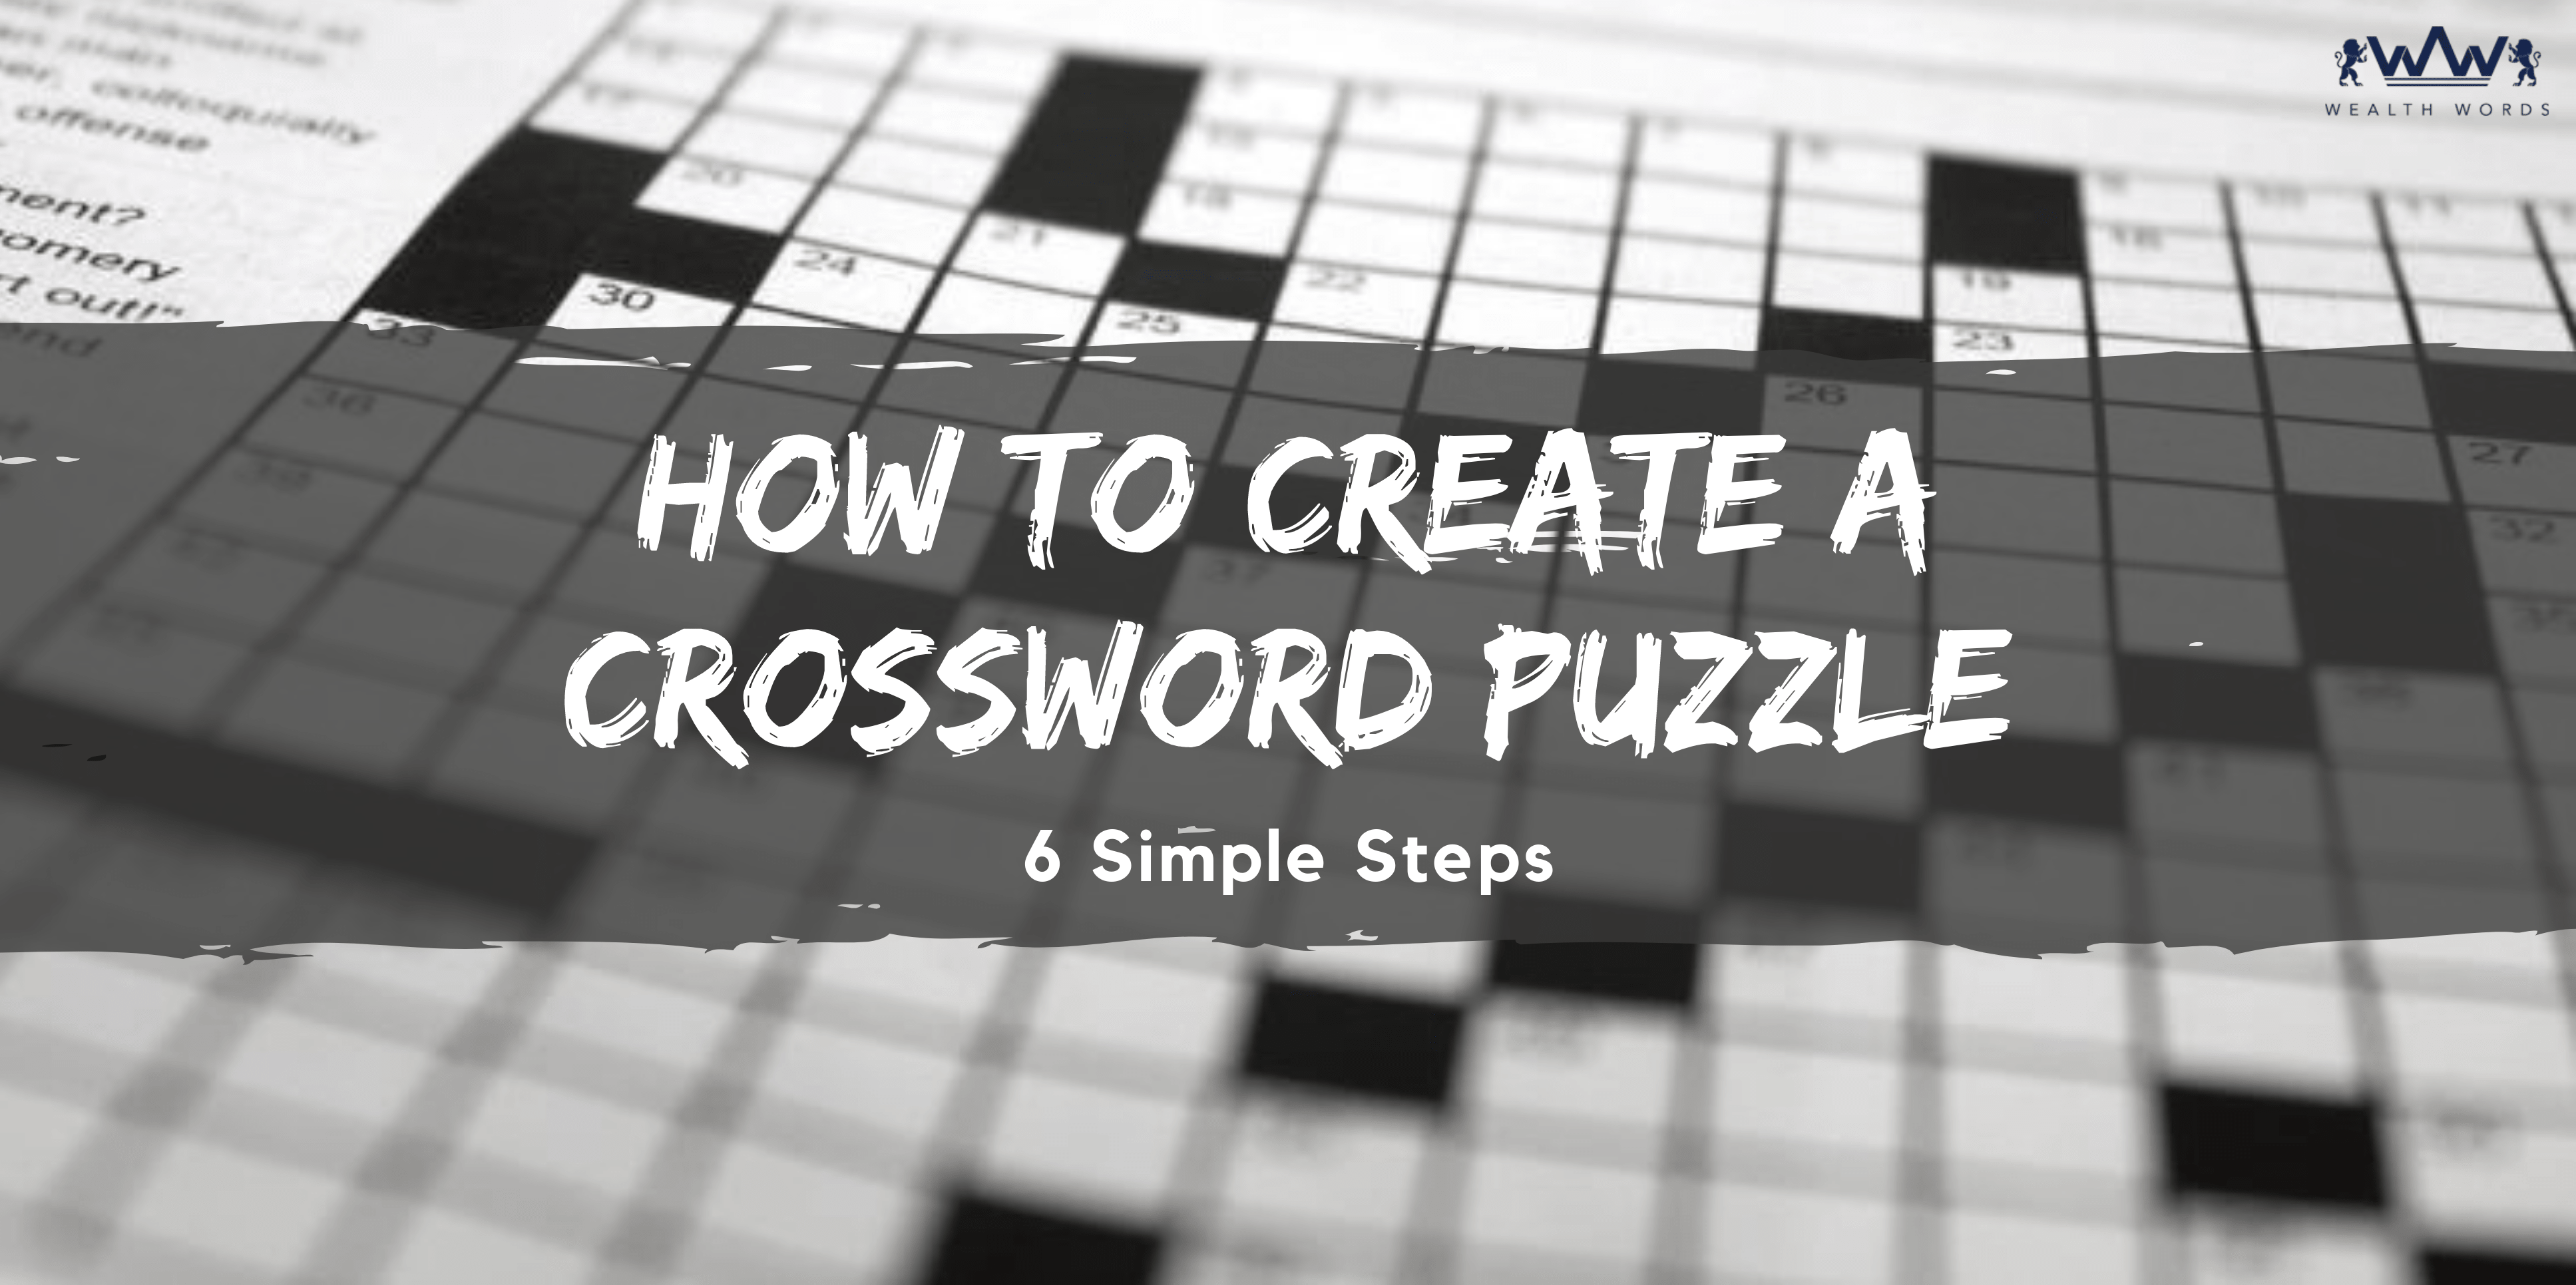 how to make a crossword puzzle, newspaper crossword puzzle maker, free crossword puzzle, interactive crossword puzzle maker, how to make a crossword puzzle on paper, crossword maker for kids, teachers corner crossword